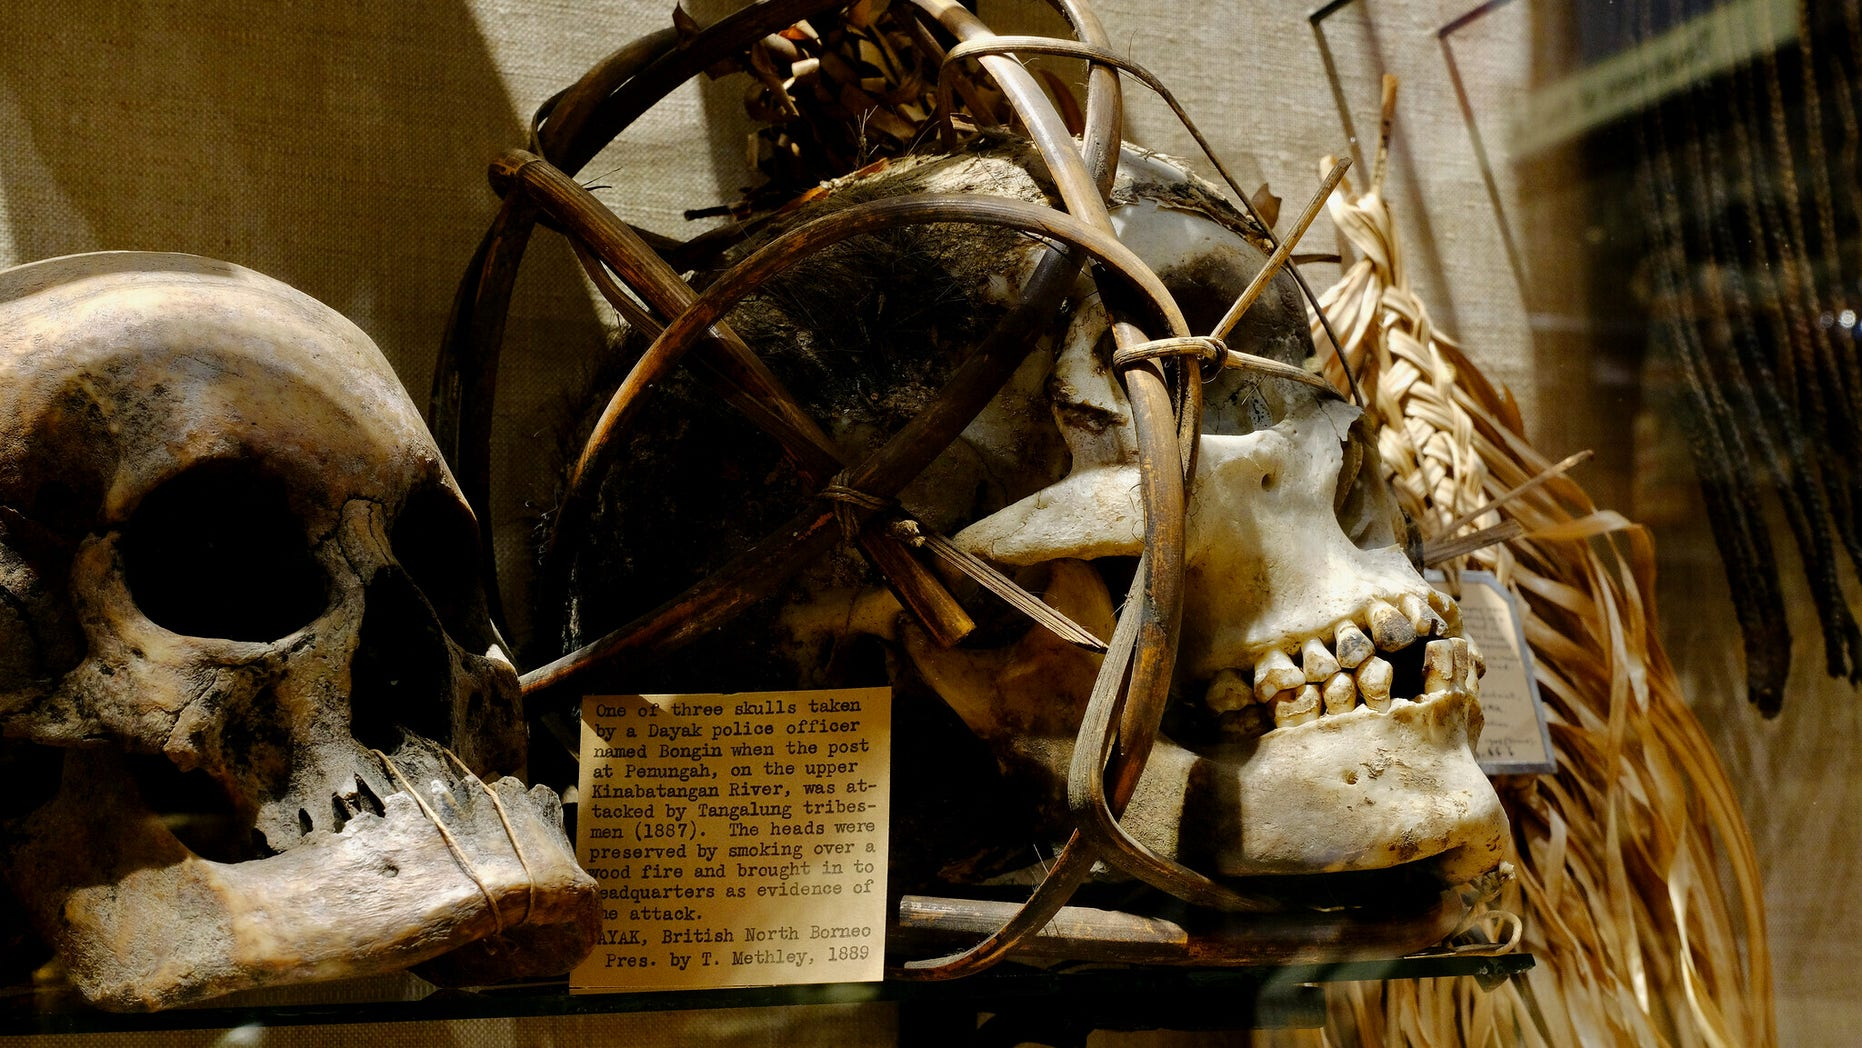 In July 2020, the Pitt Rivers Museum at the University of Oxford removed its shrunken heads and human remains from public display.